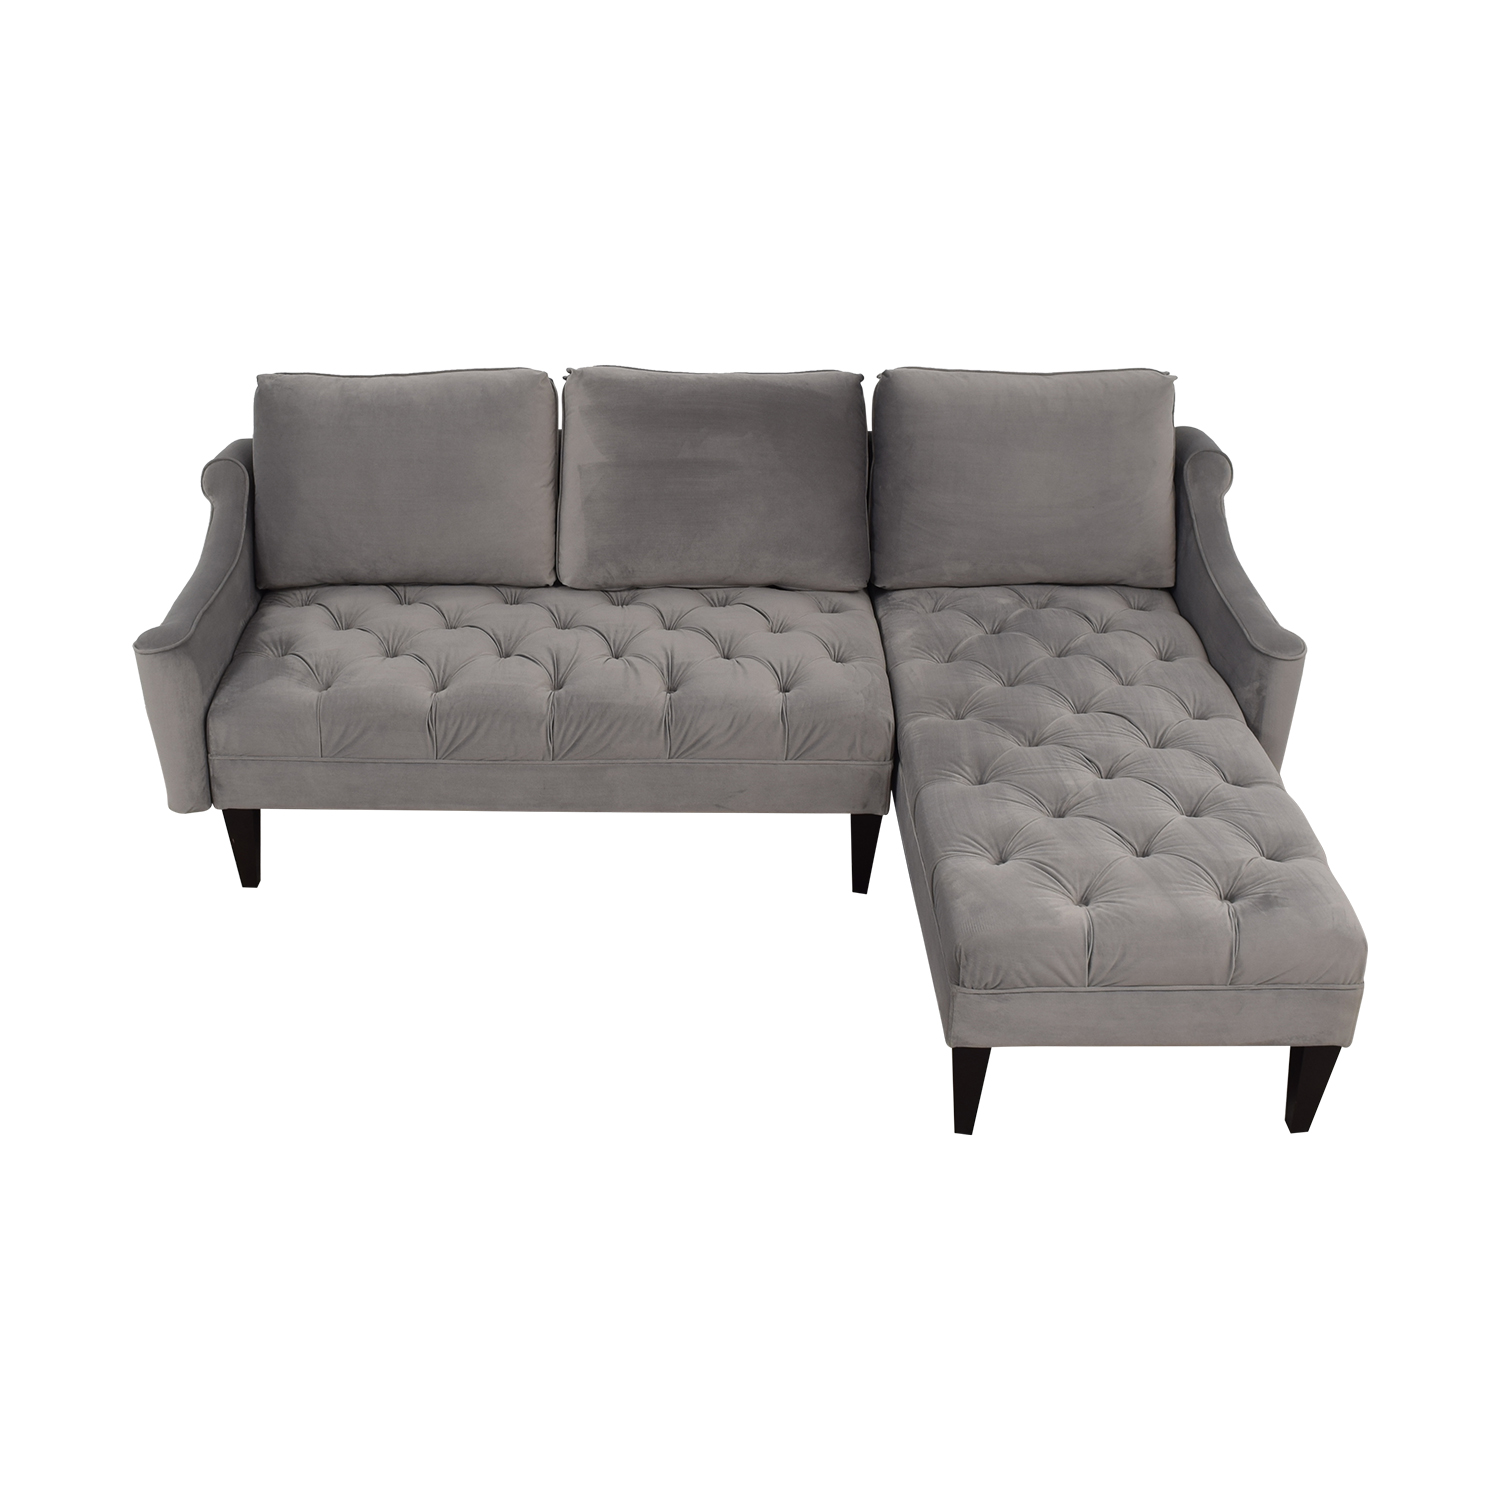 Phenomenal 71 Off Wayfair Wayfair Grey Tufted Chaise Sectional Sofas Machost Co Dining Chair Design Ideas Machostcouk